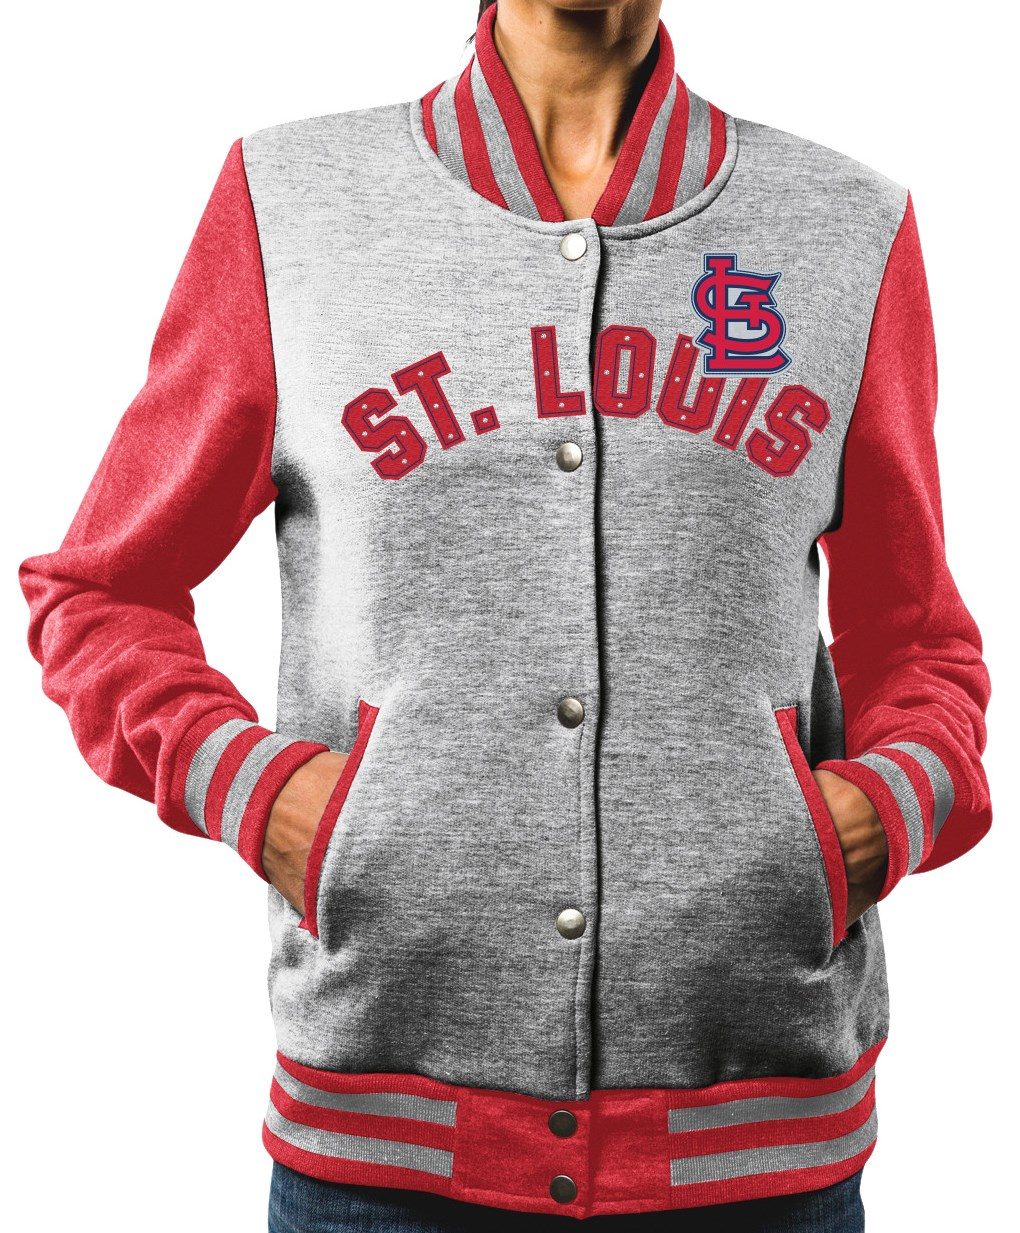 "St. Louis Cardinals Women's Majestic MLB ""Stolen Bases"" Bomber Jacket by Majestic"